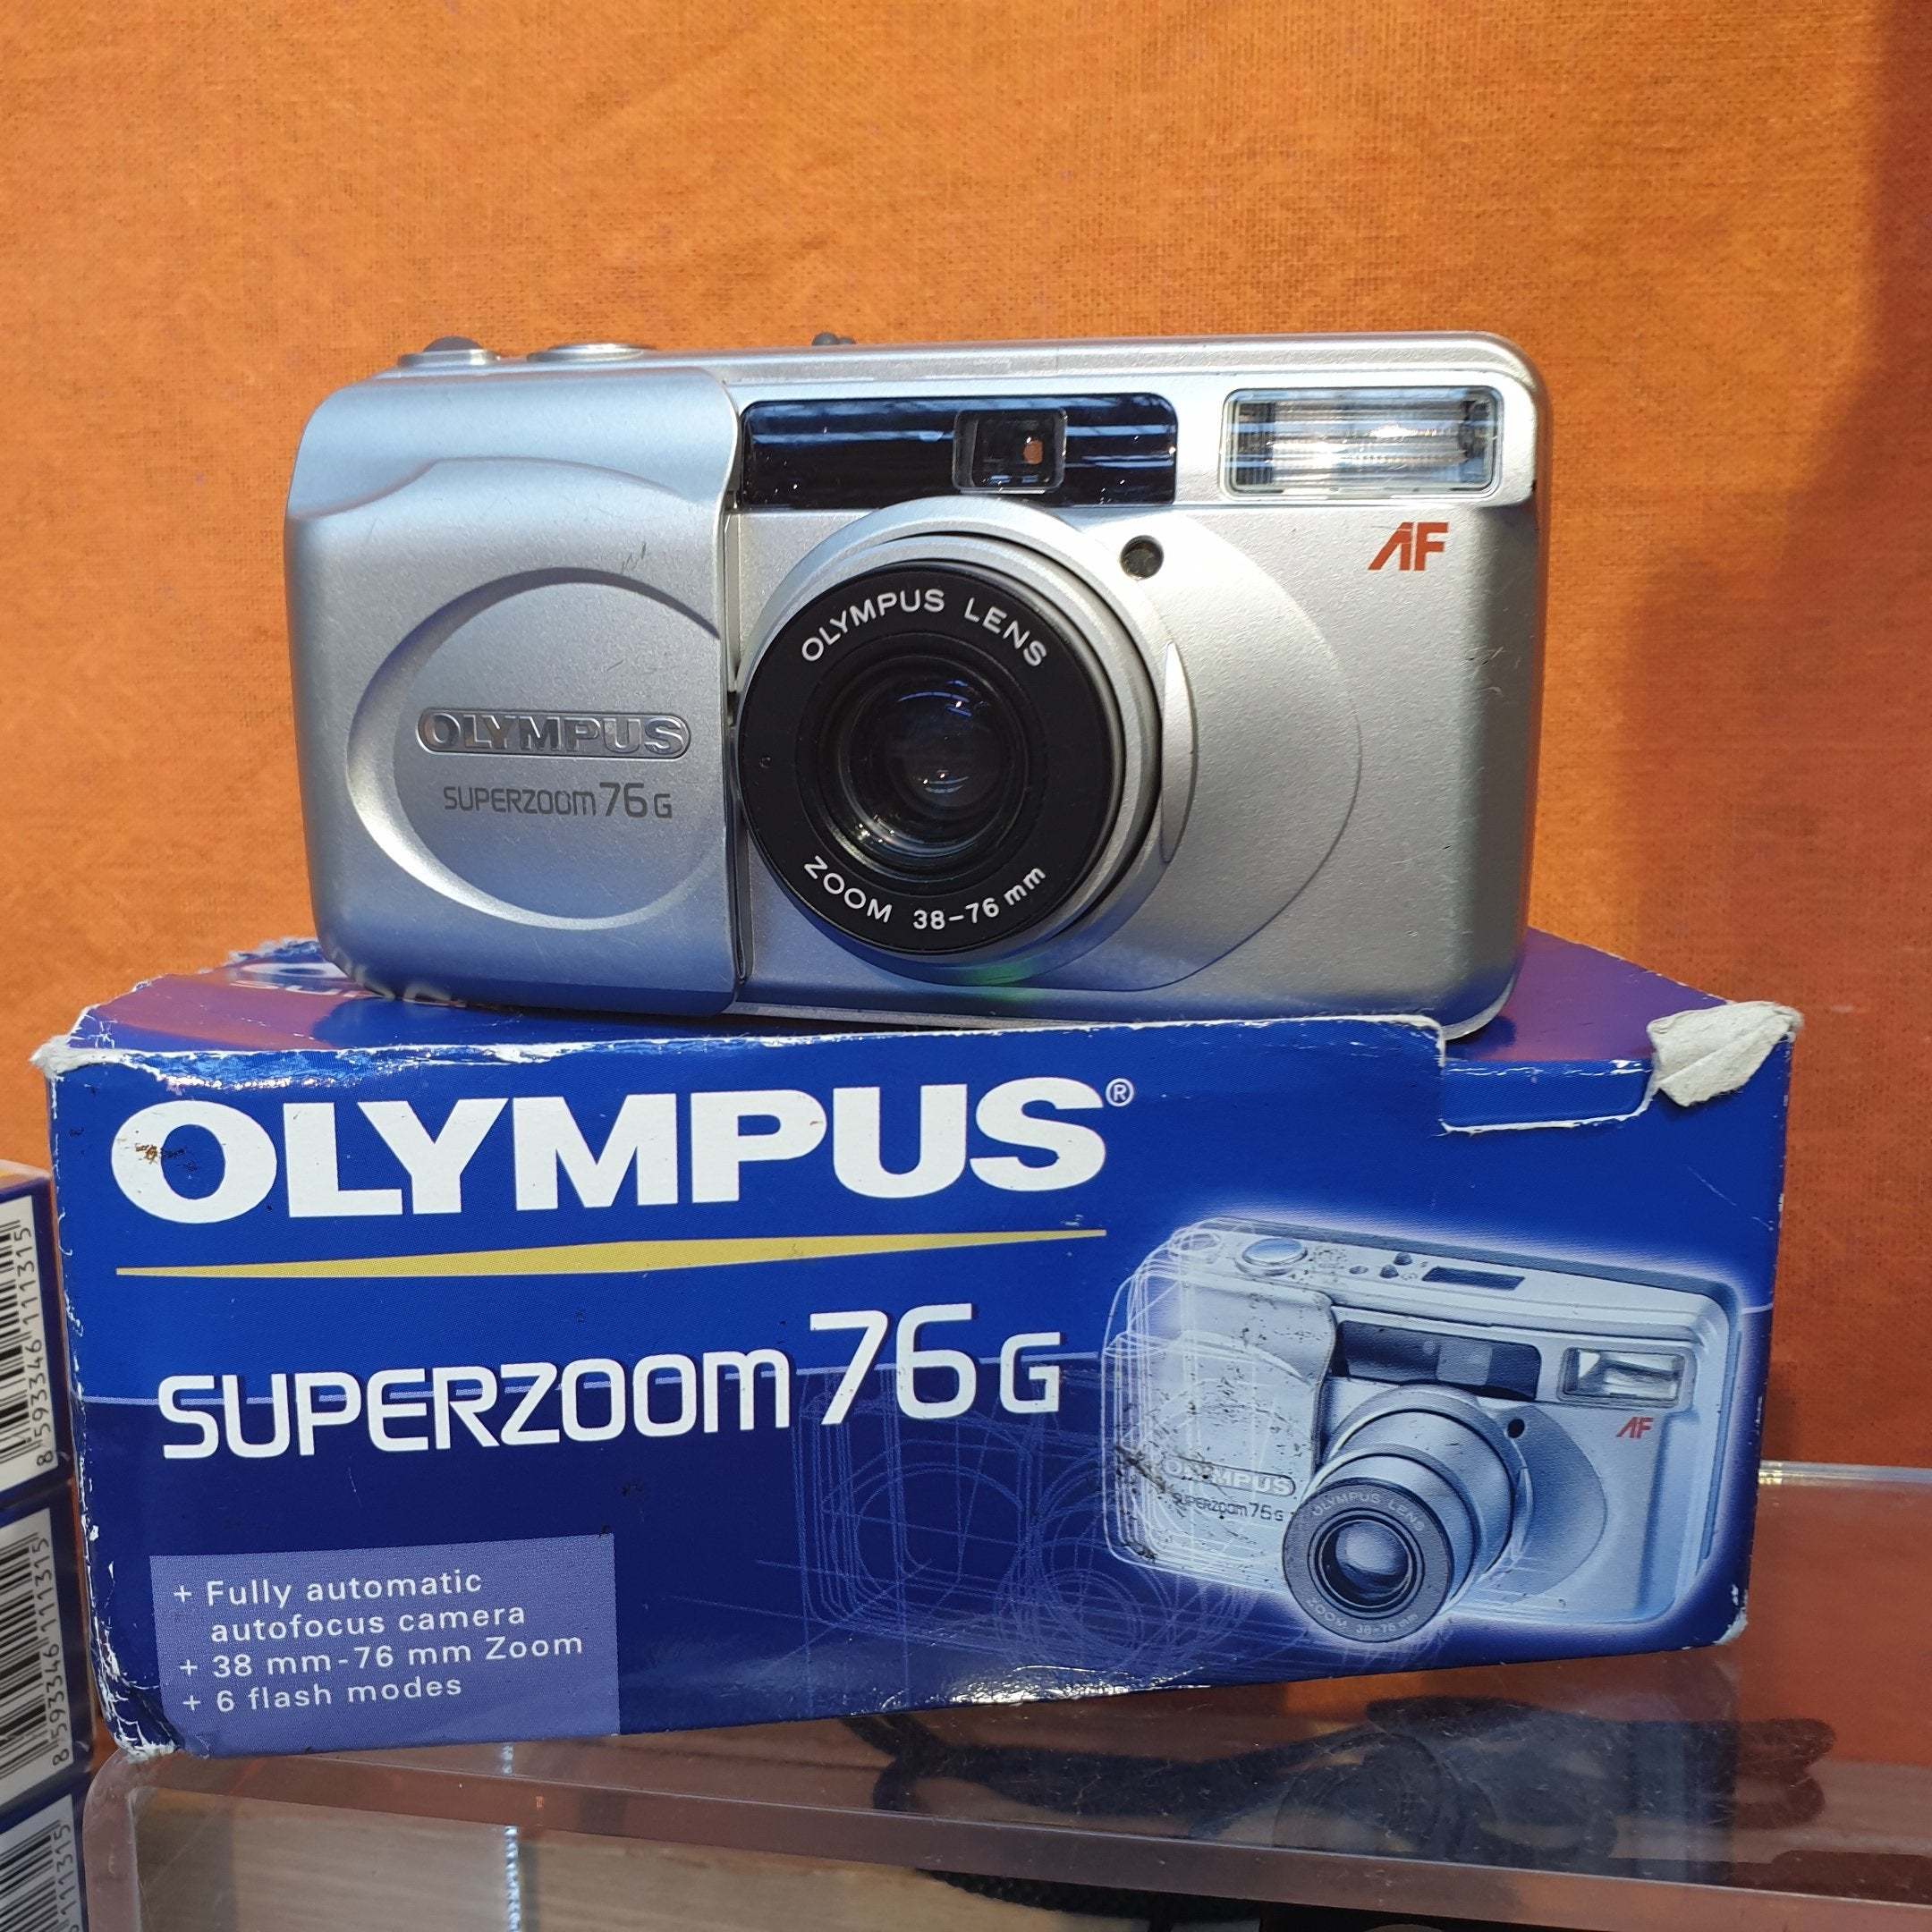 Olympus superzoon 76 G (4613121) - Greenwich Cameras and Film